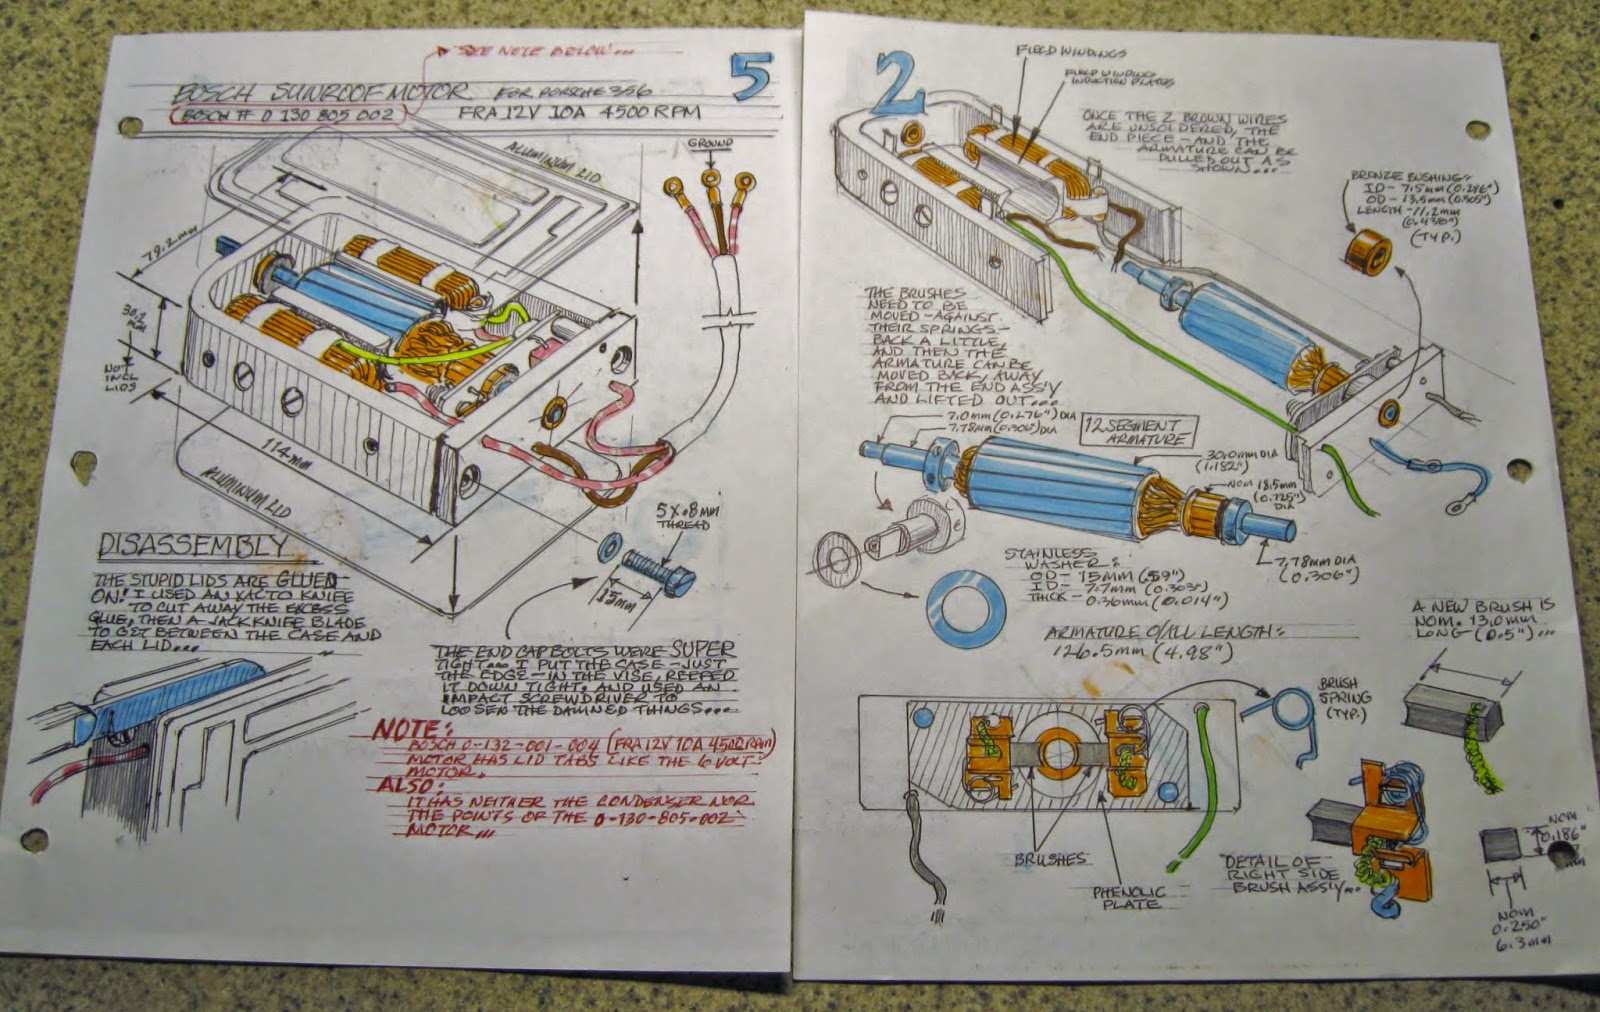 Saab Journal Porsche Sunroof Motor Reconditioning Dim Engine Diagram These Are Just Two Of Eight Pages My Own How To Instructions That I Made As Did The Motors Take A View Recreating